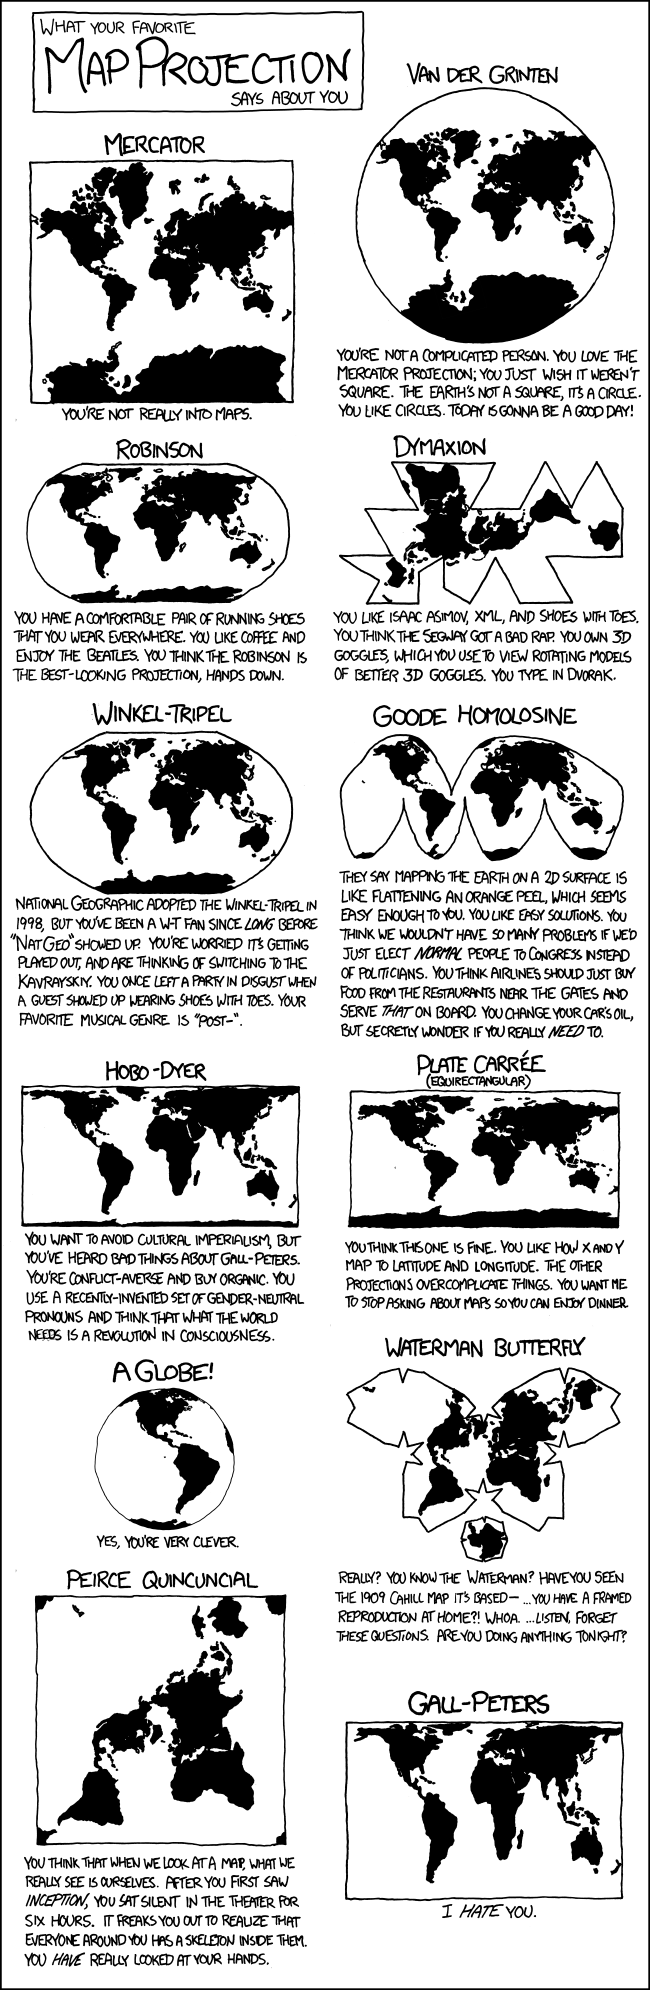 Map Projections from xkcd comics (Mercator, Van Der Grinten, Robinson, Gall-Peters)